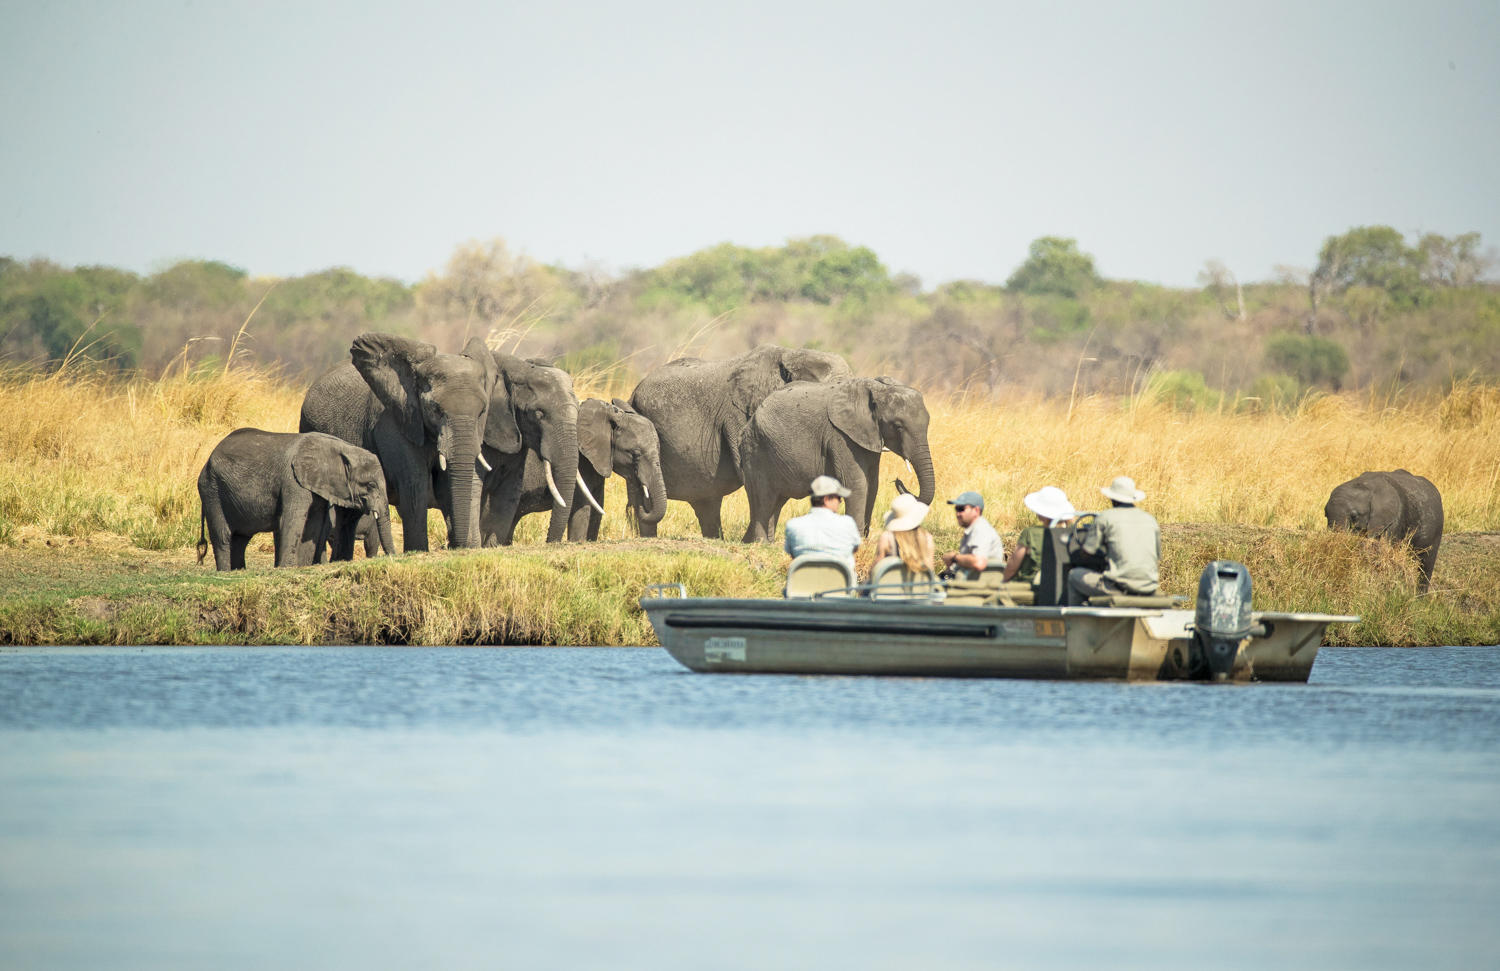 Tourists enjoying incredible elephant sightings on the Chobe River